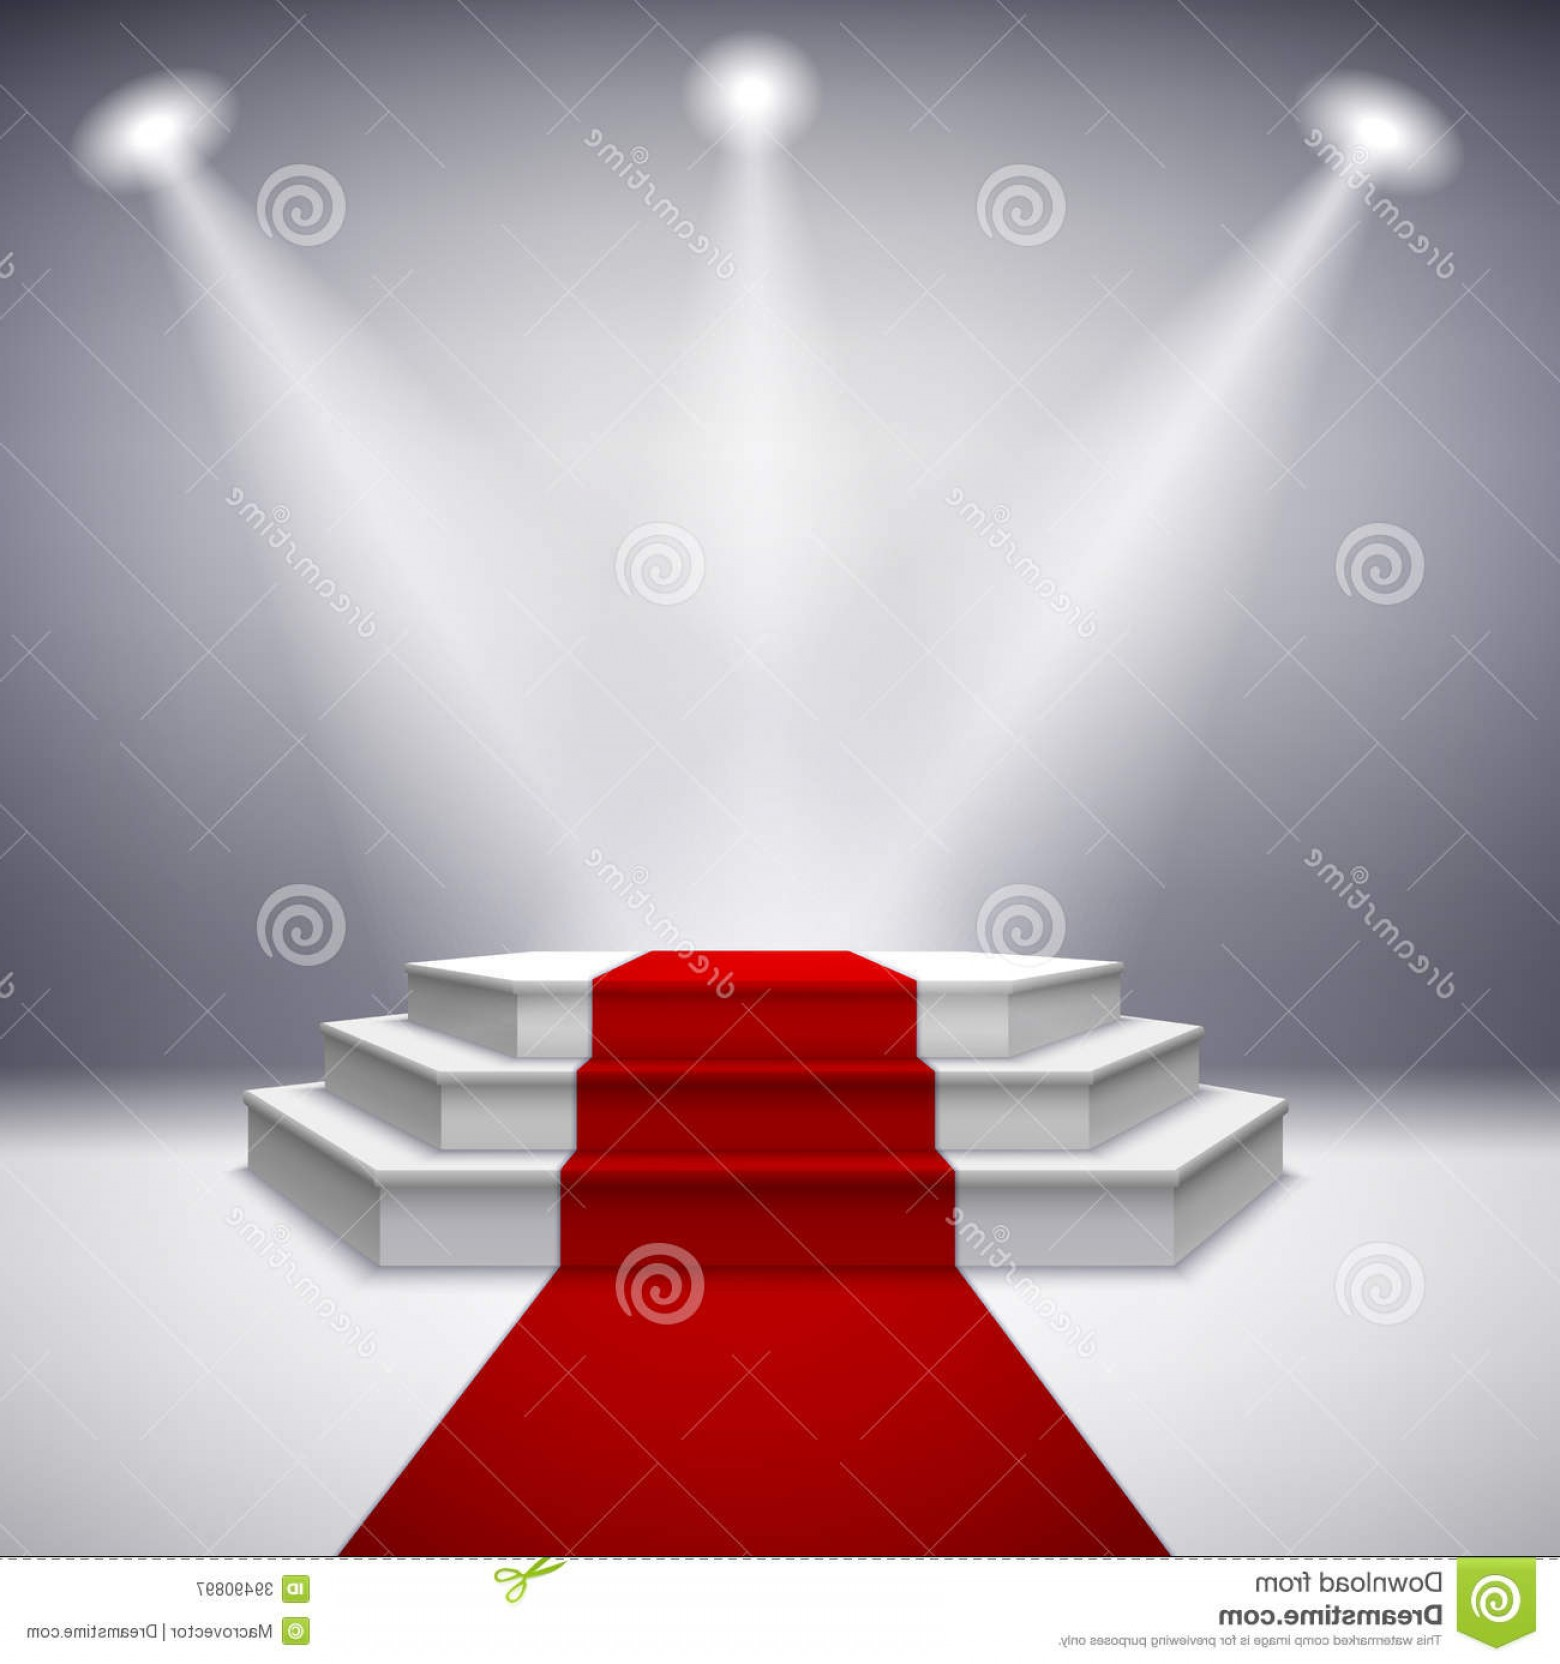 Carpet Vector 2D: Illuminated Stage Podium With Red Carpet Illustration